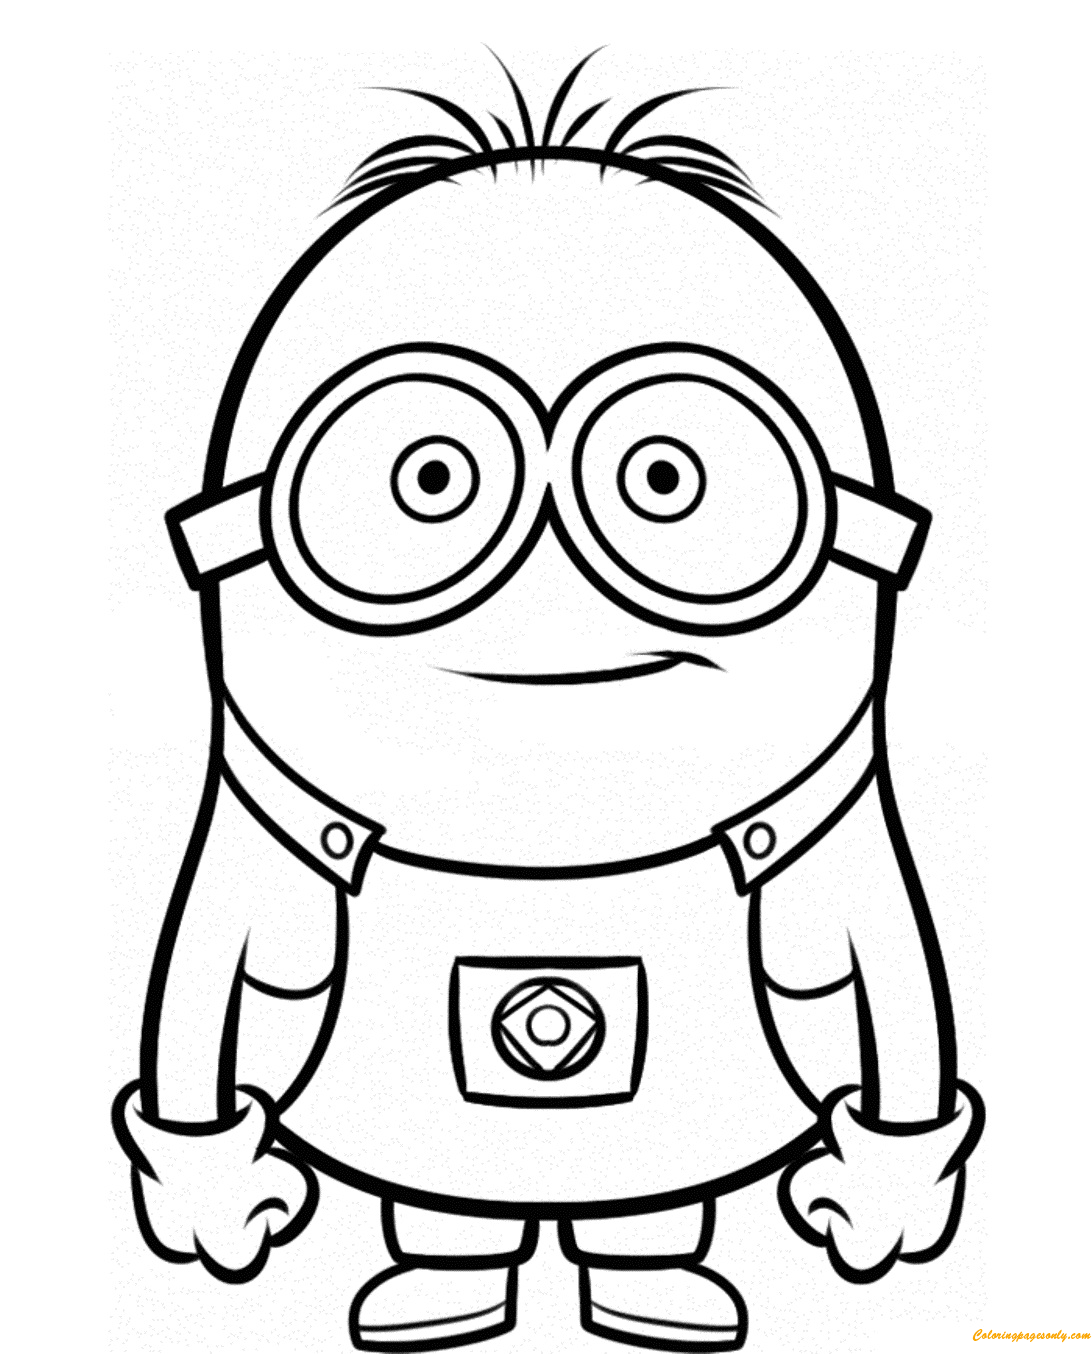 Smiley Minion Despicable Me Sb76d Coloring Page